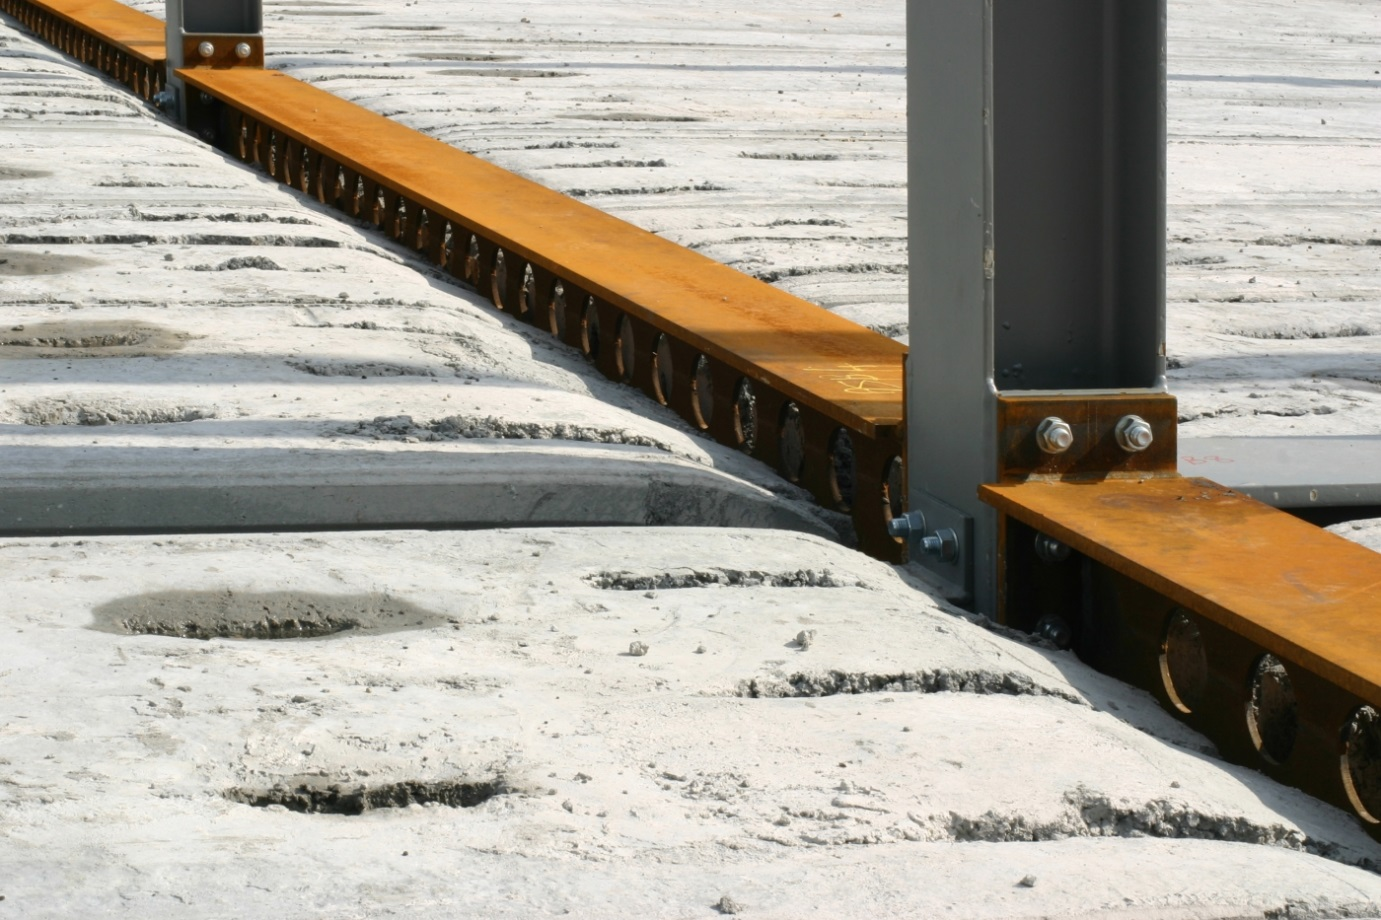 2 Way Switch Staircase Usfb With Precast Hollocore Slabsimage Courtesy Of Kloeckner Westok